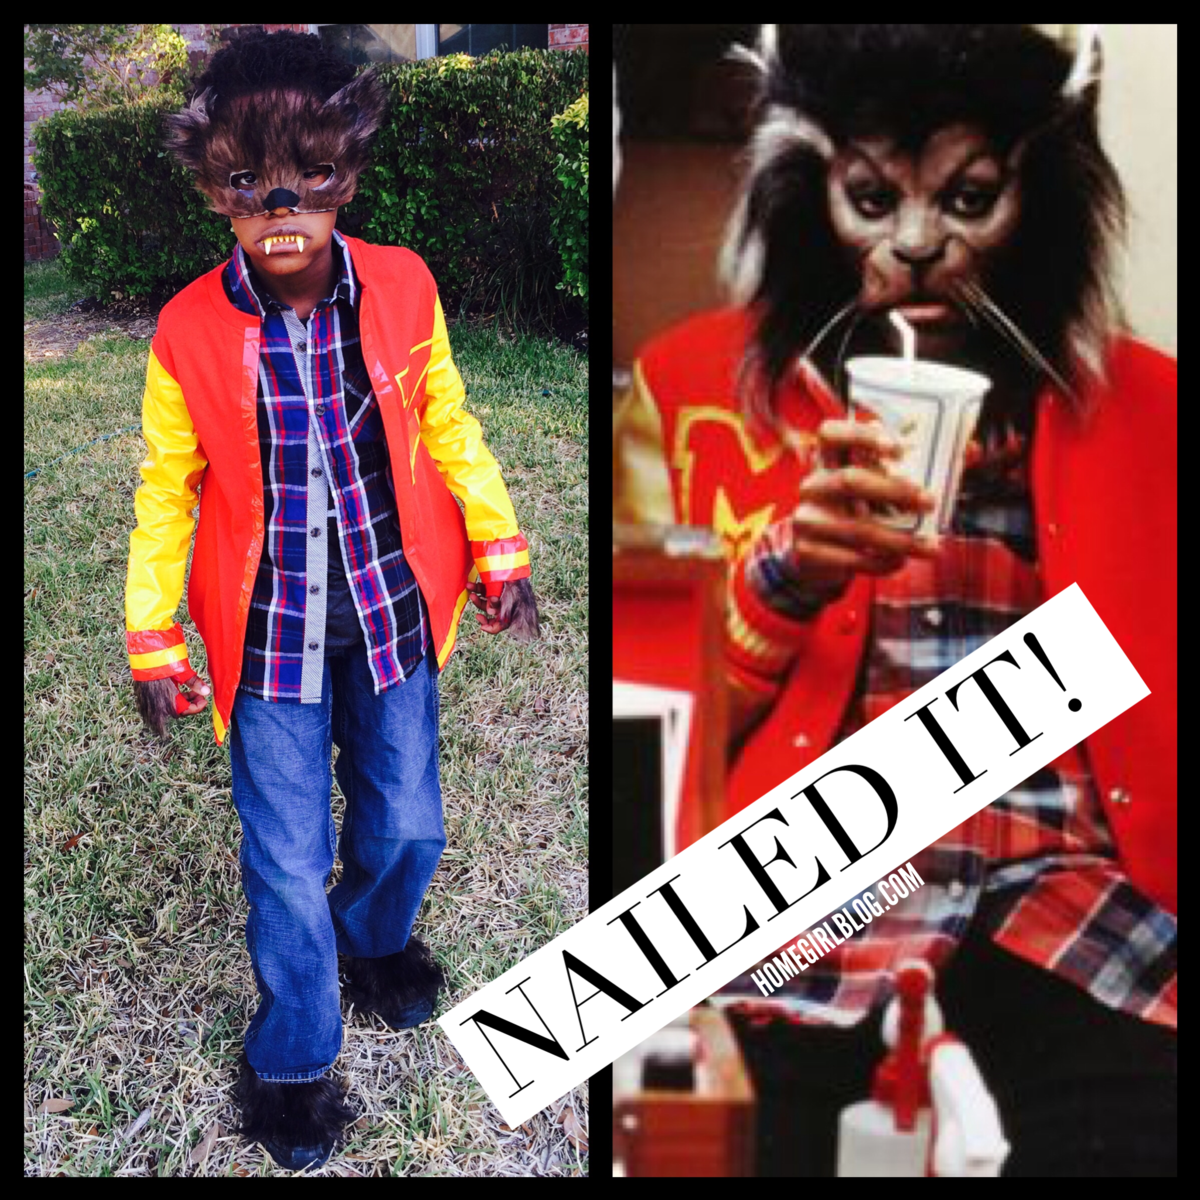 DIY Thriller Werewolf Costume  sc 1 st  Home Girl Blog & DIY Thriller Werewolf Costume - Home Girl Blog